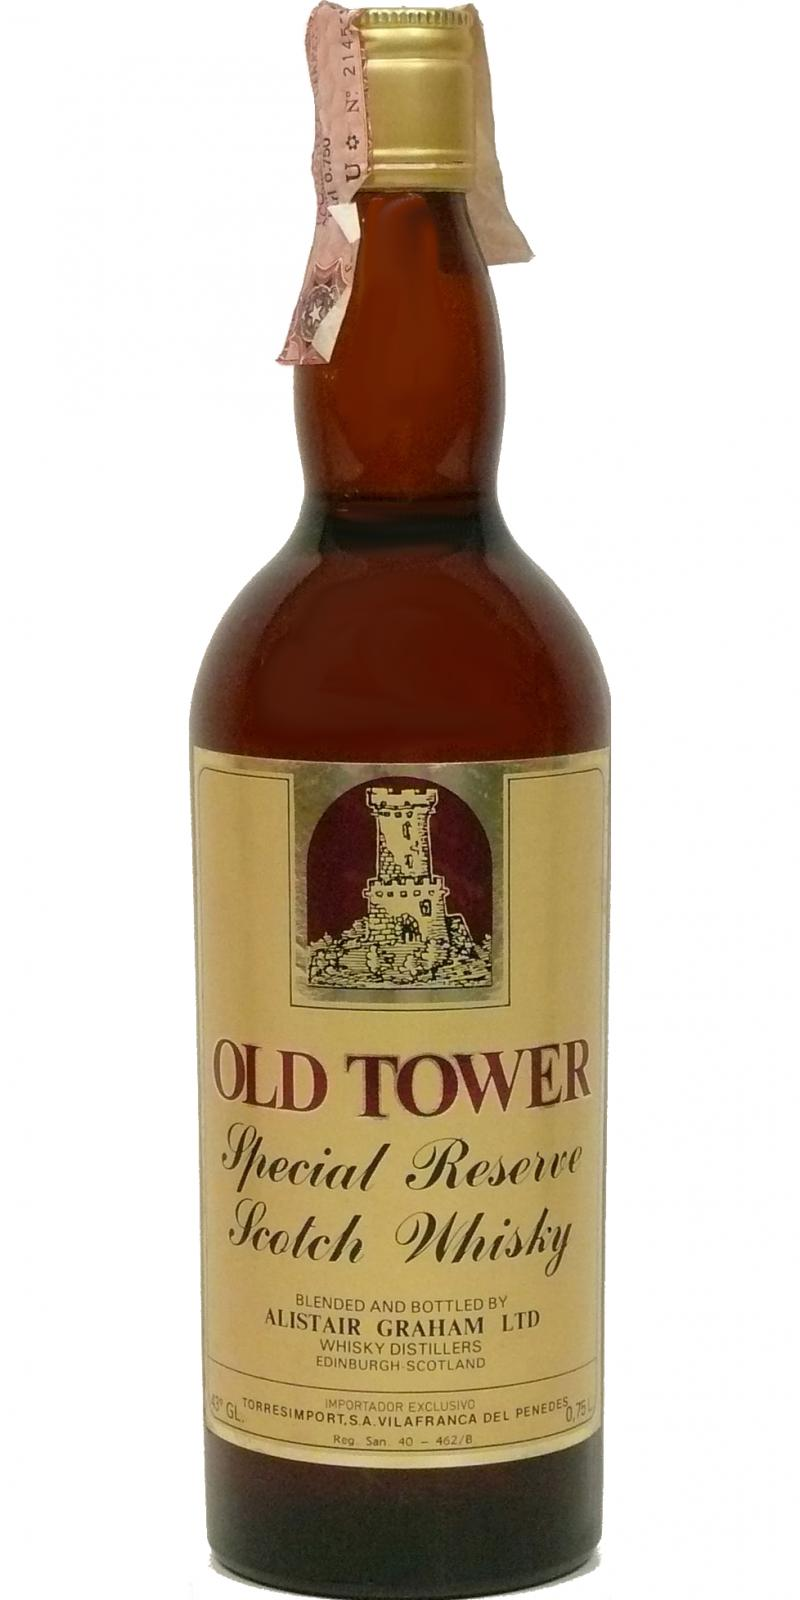 Old Tower Special Reserve Scotch Whisky